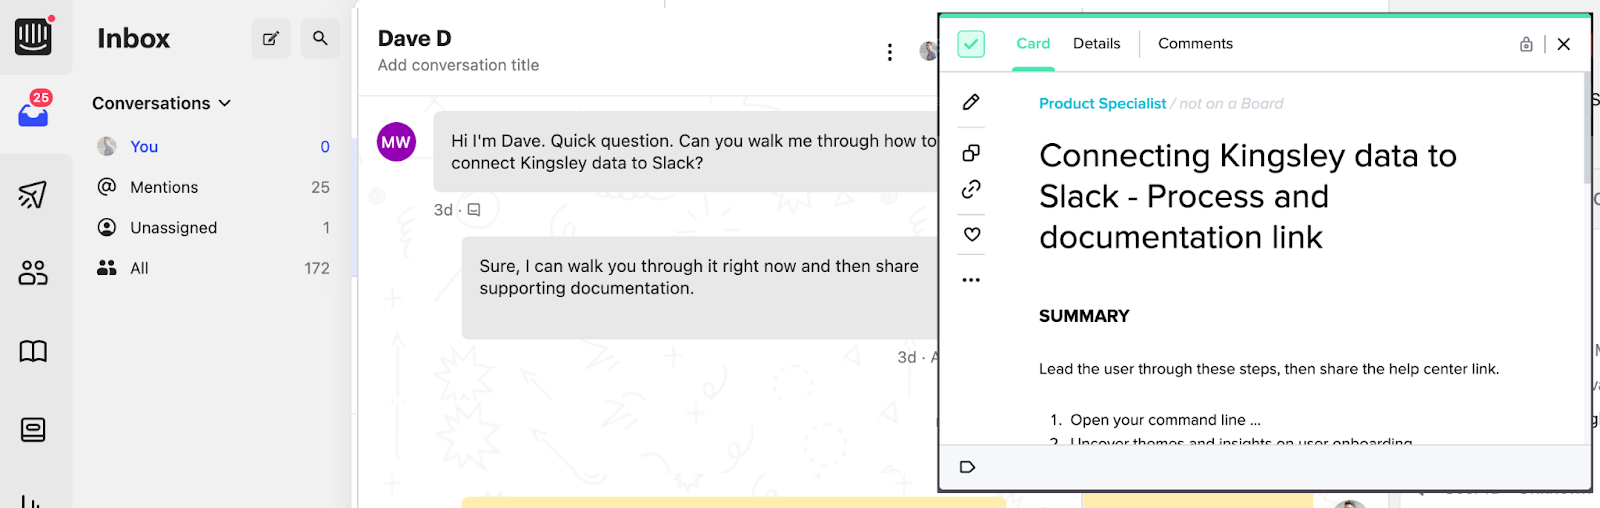 chatbot example for guiding customers